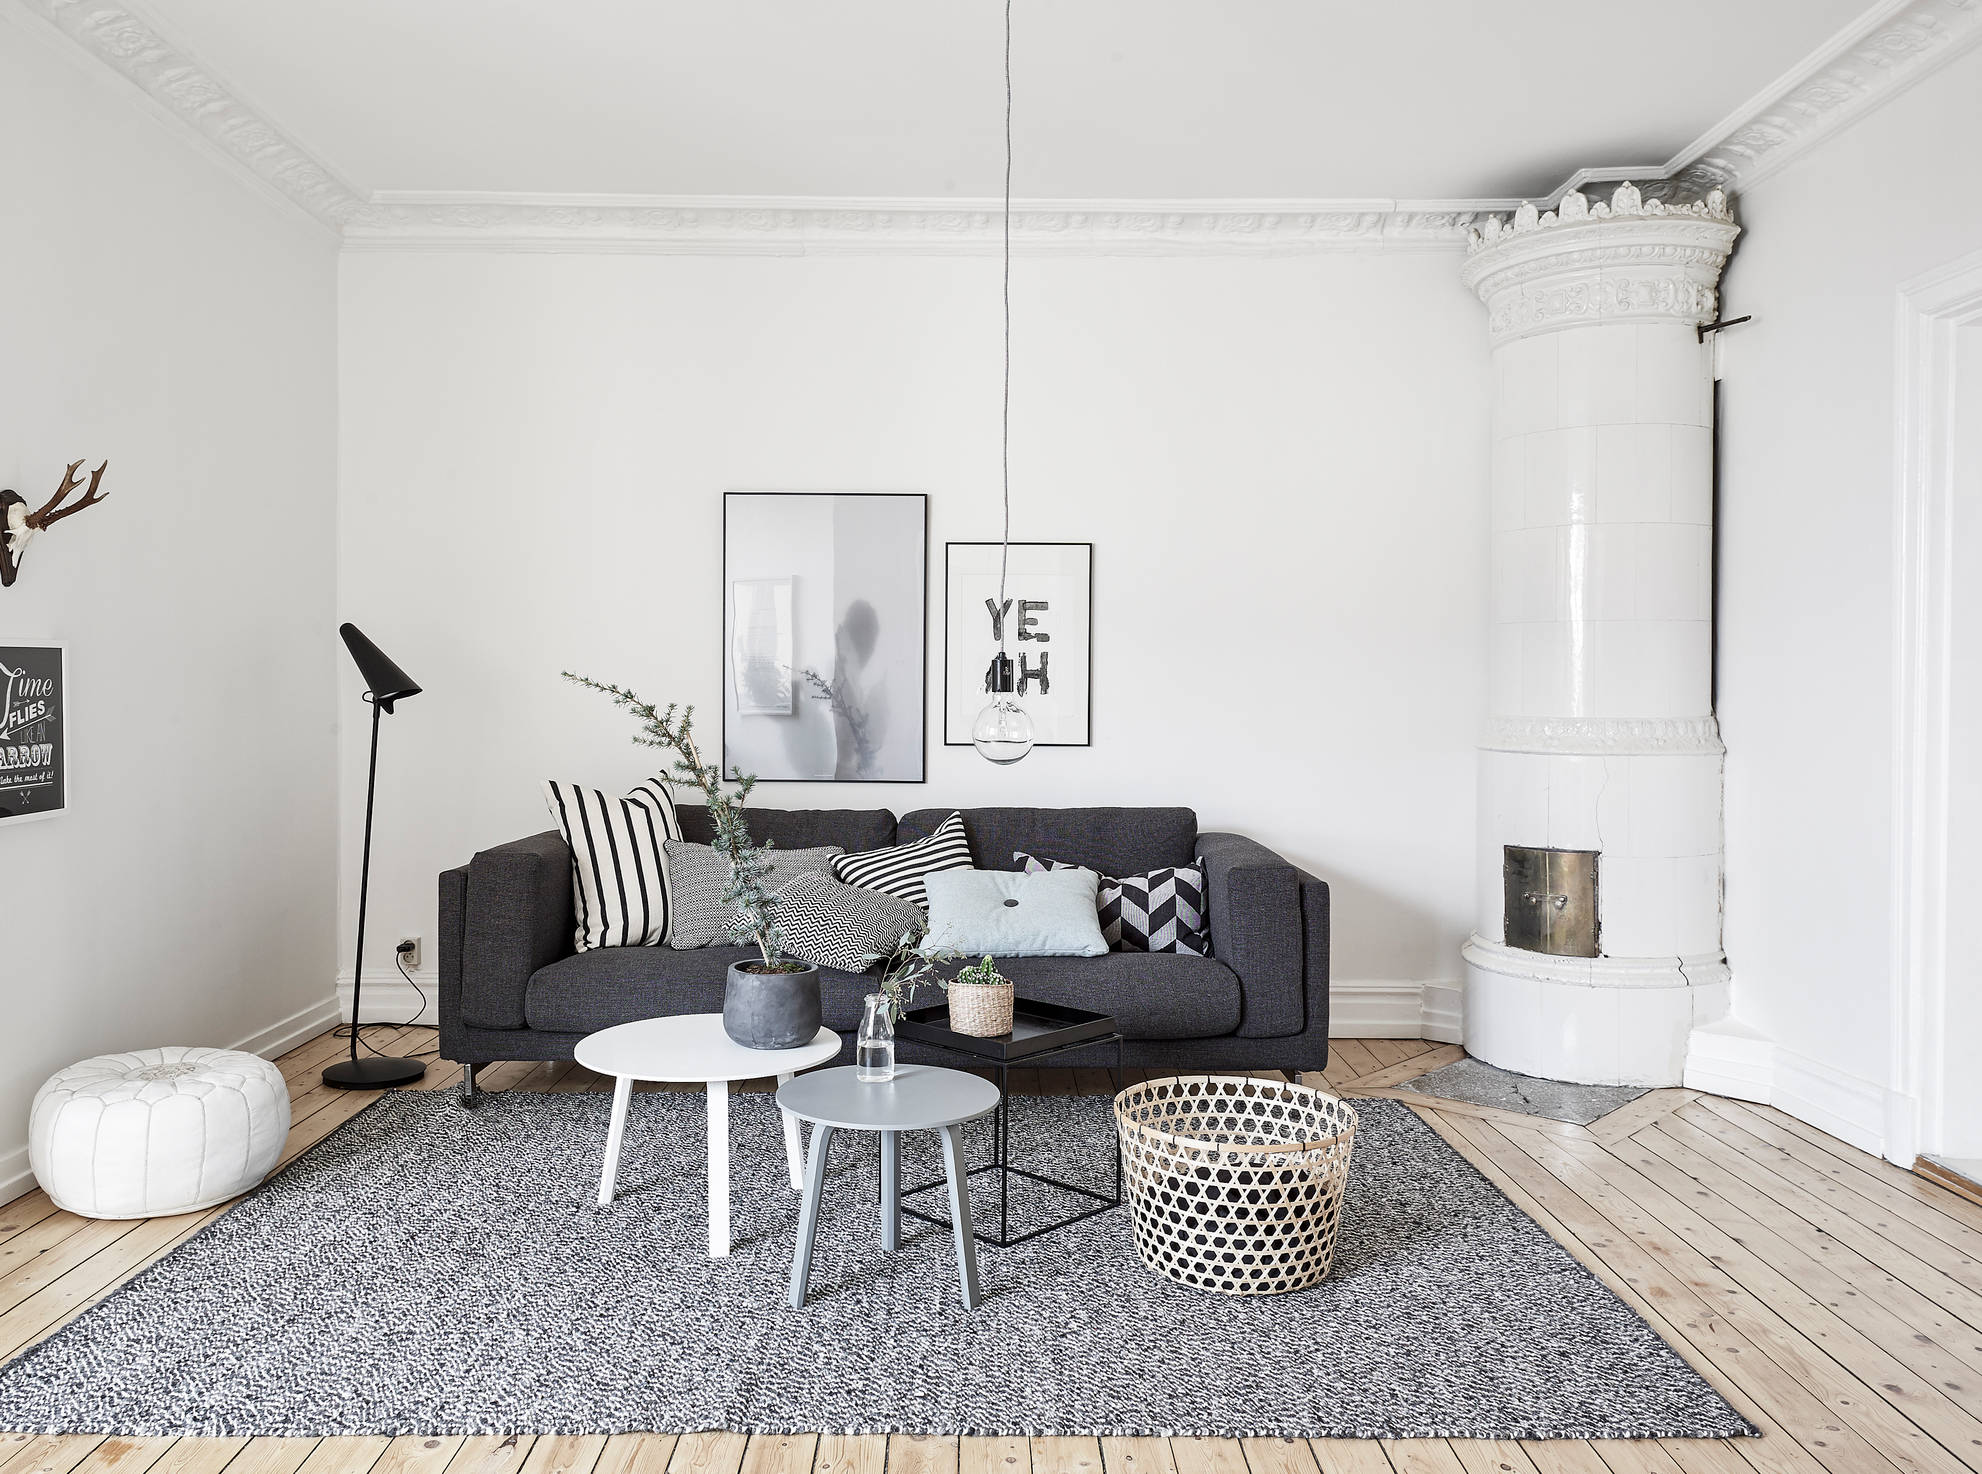 catesthill-i-wish-i-lived-here-scandinavian-home- & I wish I lived here: a calming Scandinavian home with a festive ...